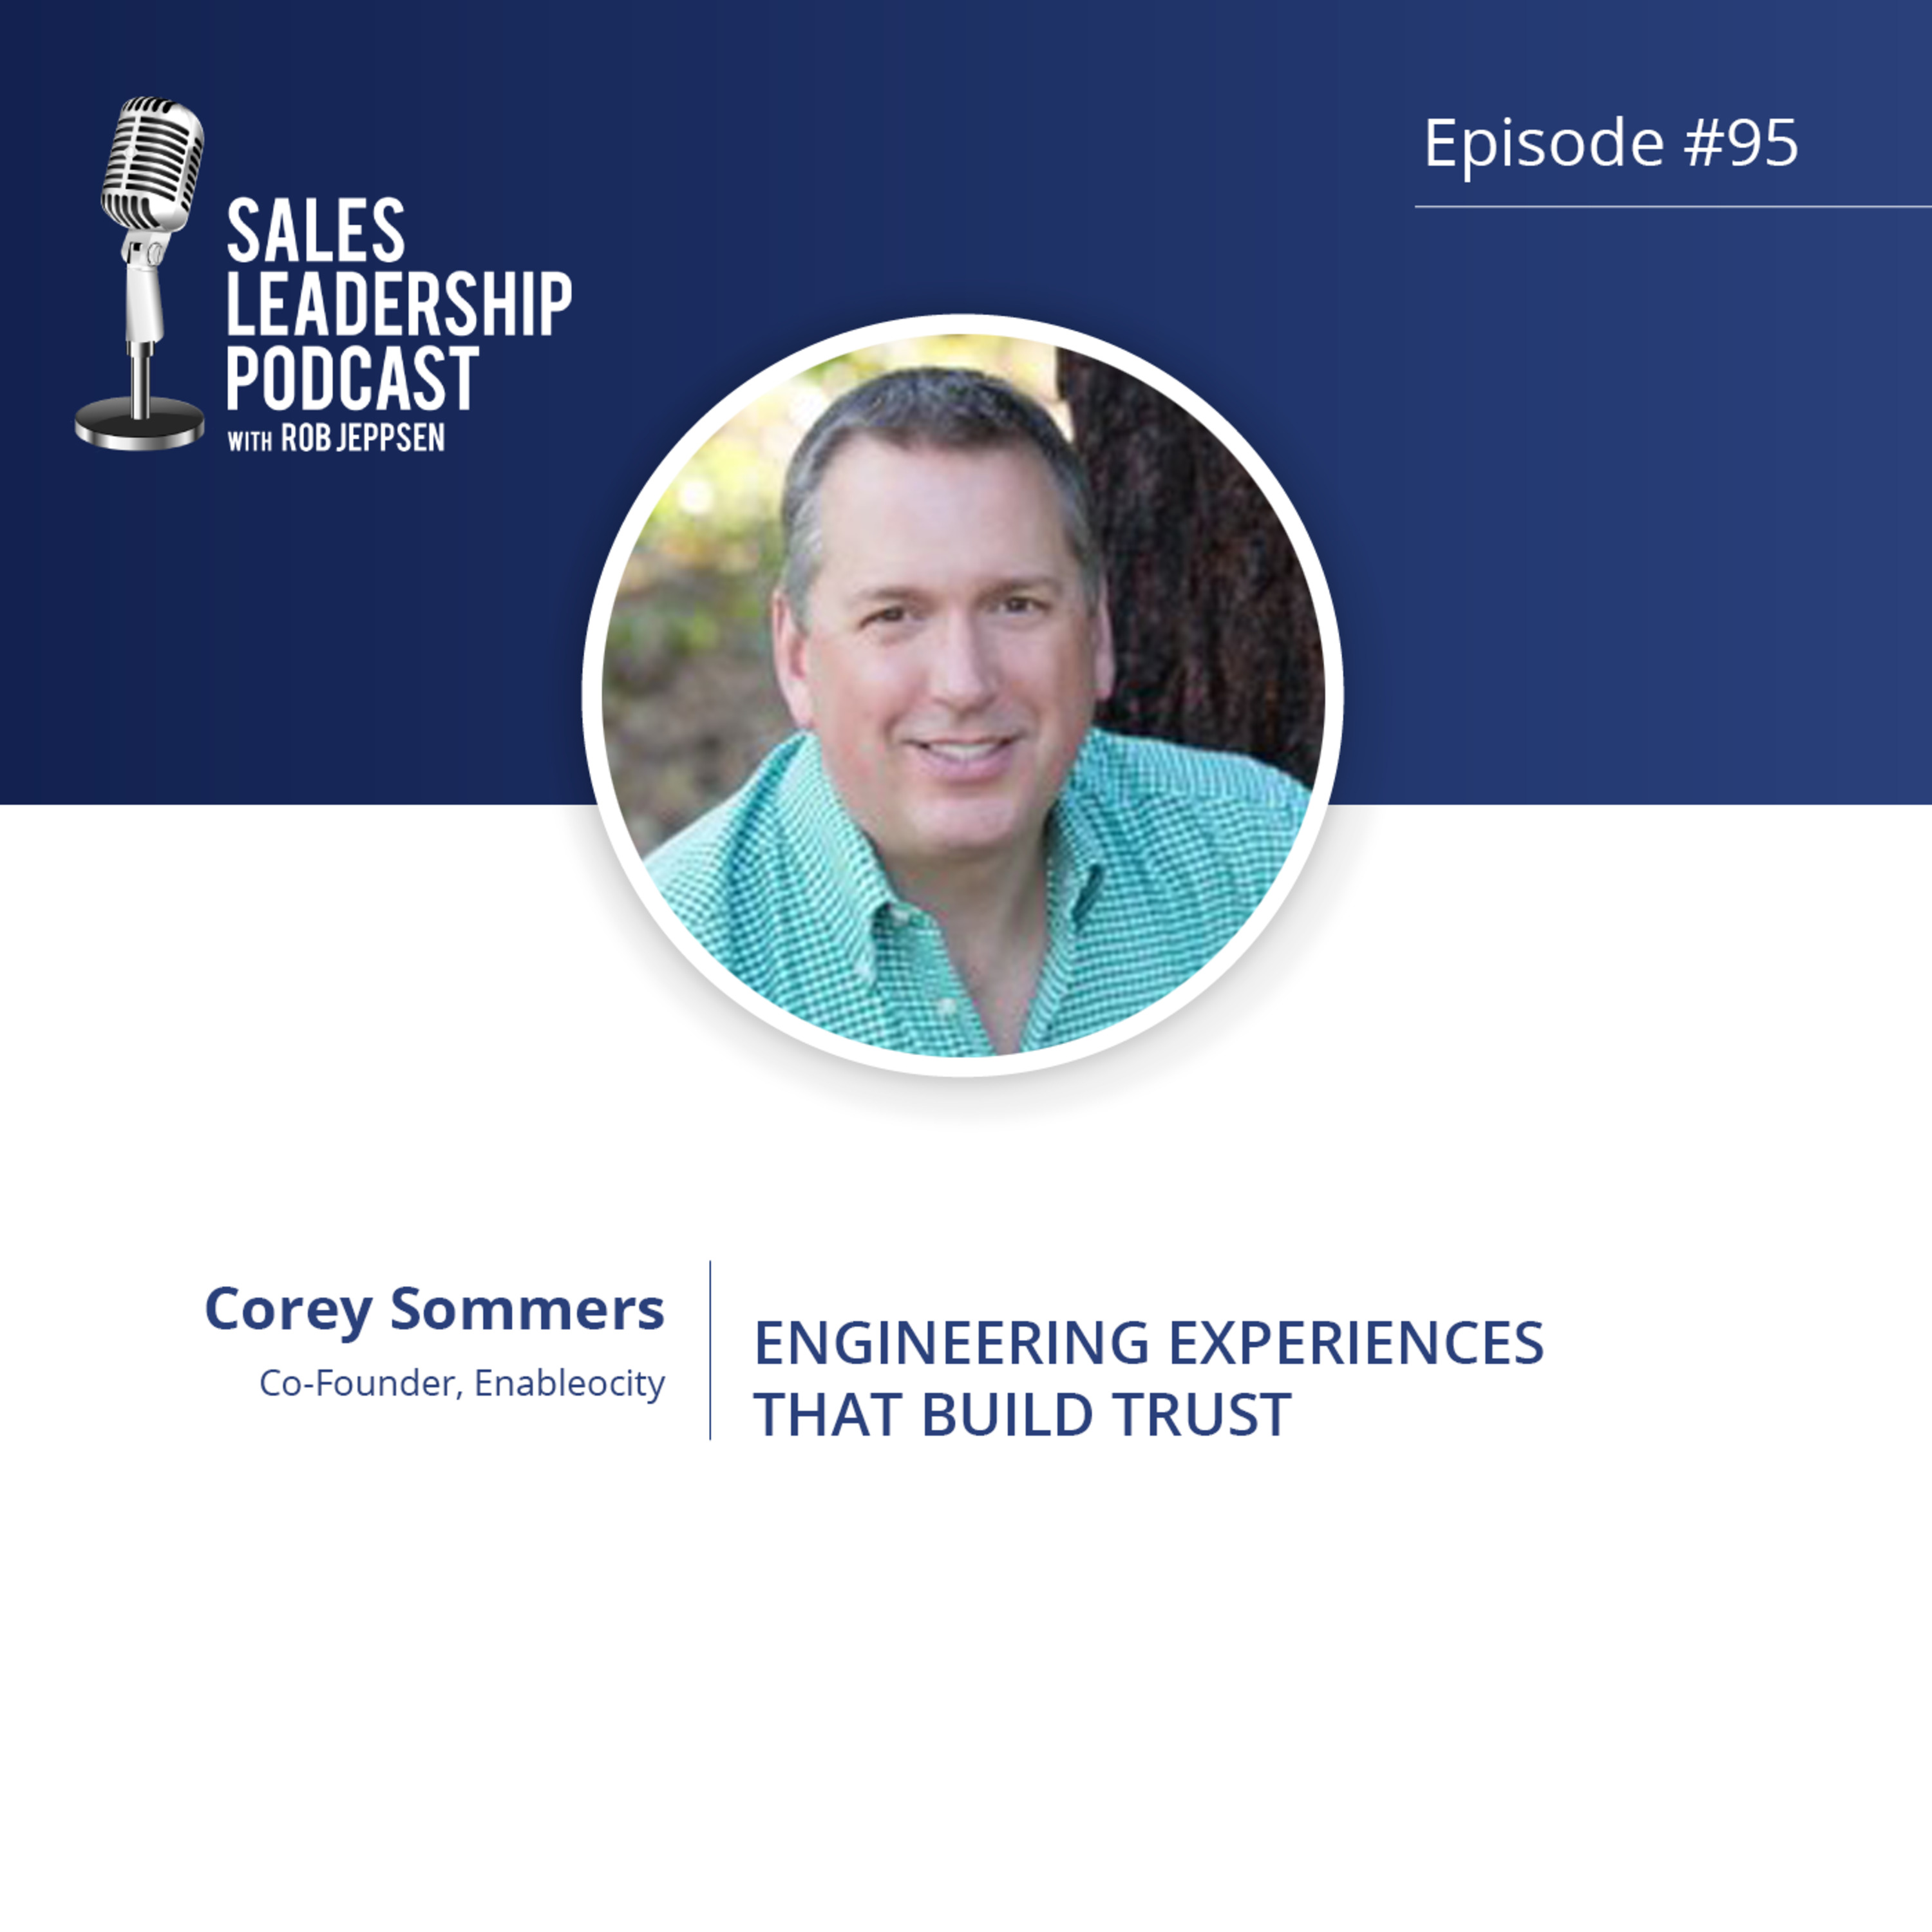 Episode 95: #95: Corey Sommers of Enableocity — Engineering Experiences That Build Trust